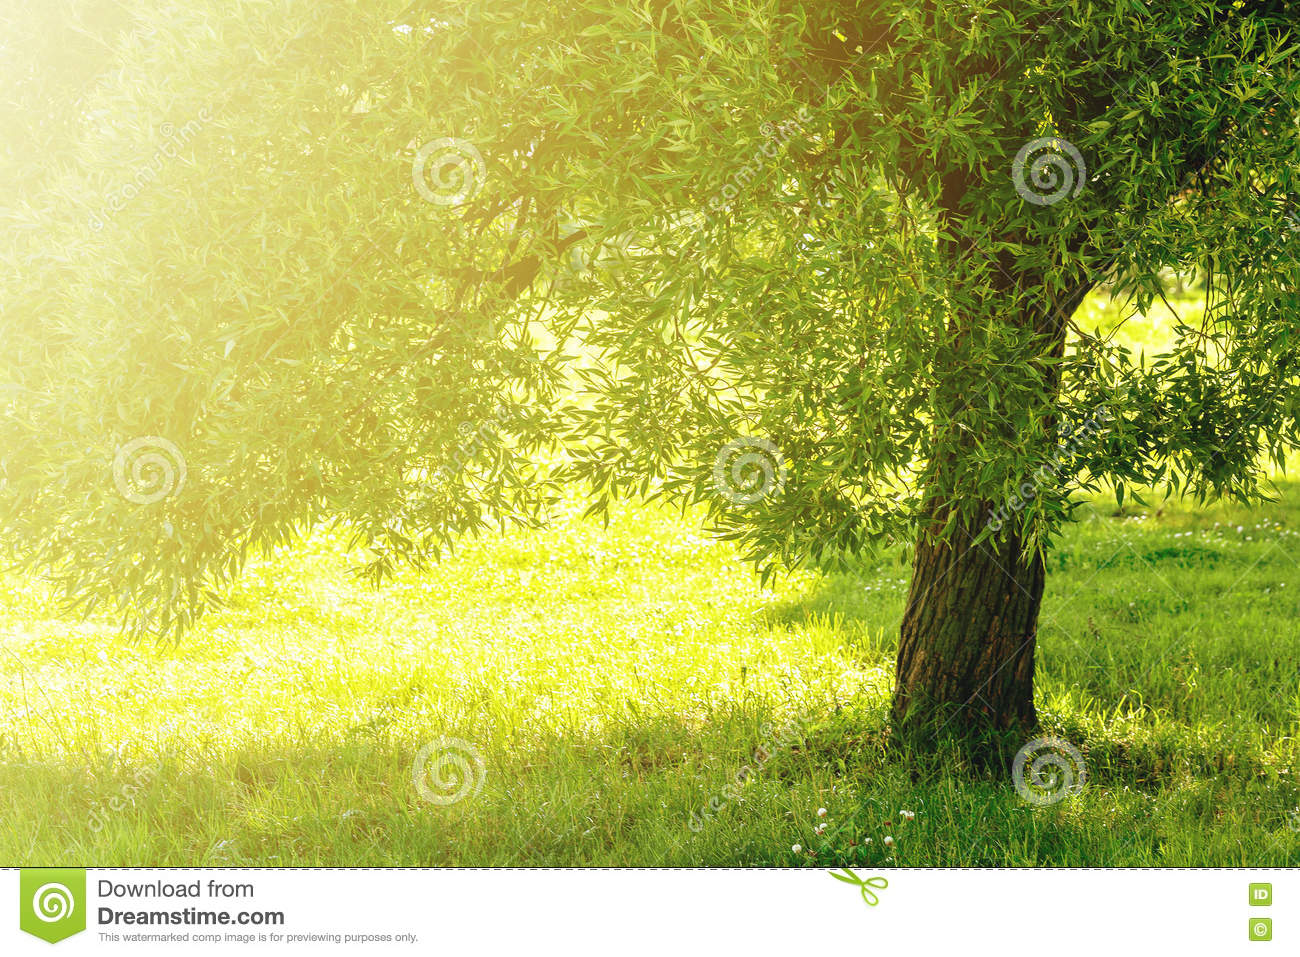 Outdoor Tree Park Nature Green Background Stock Photo Image of